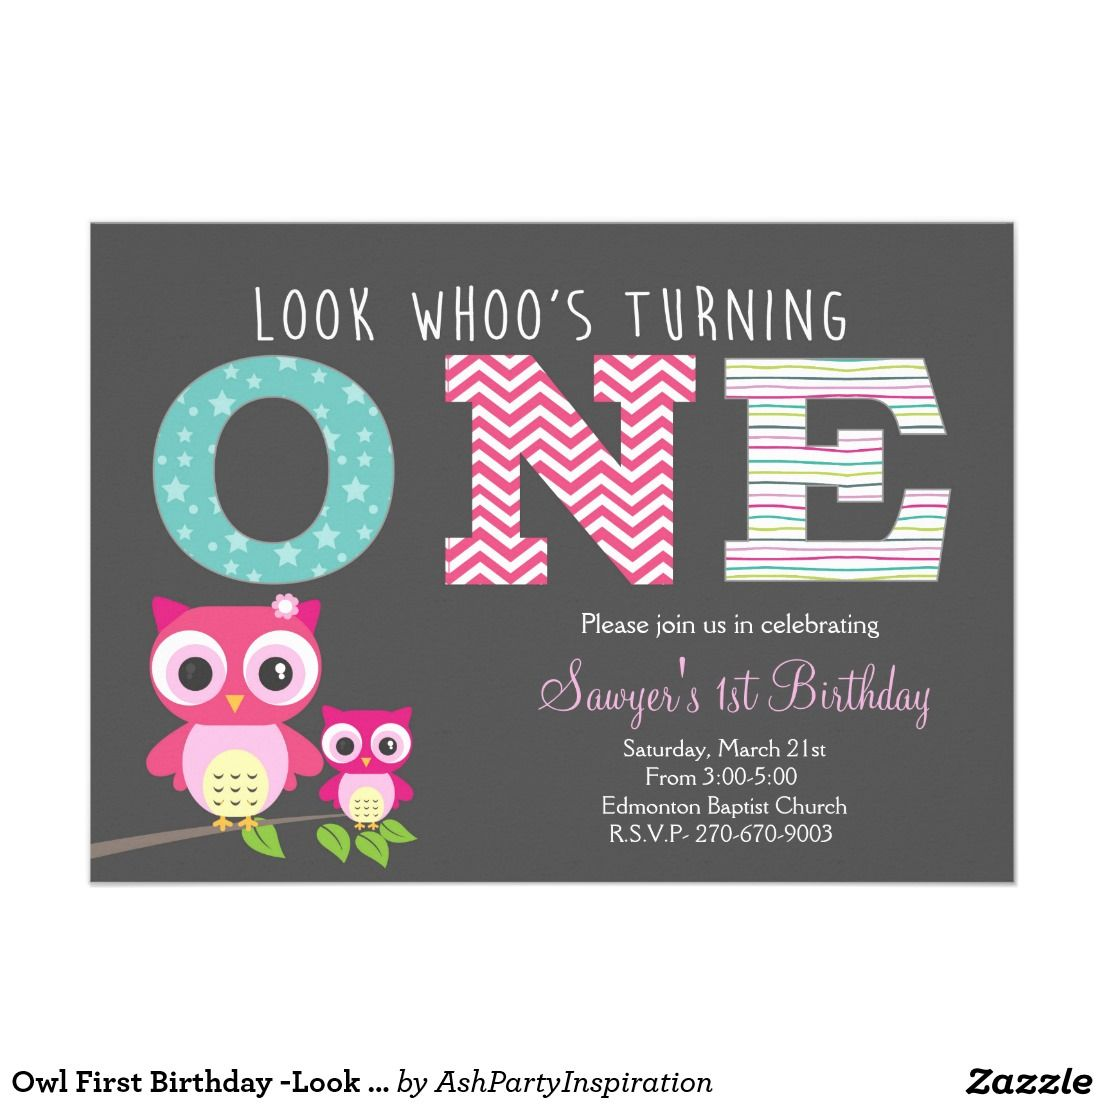 Owl First Birthday -Look whoo is turning one 5\